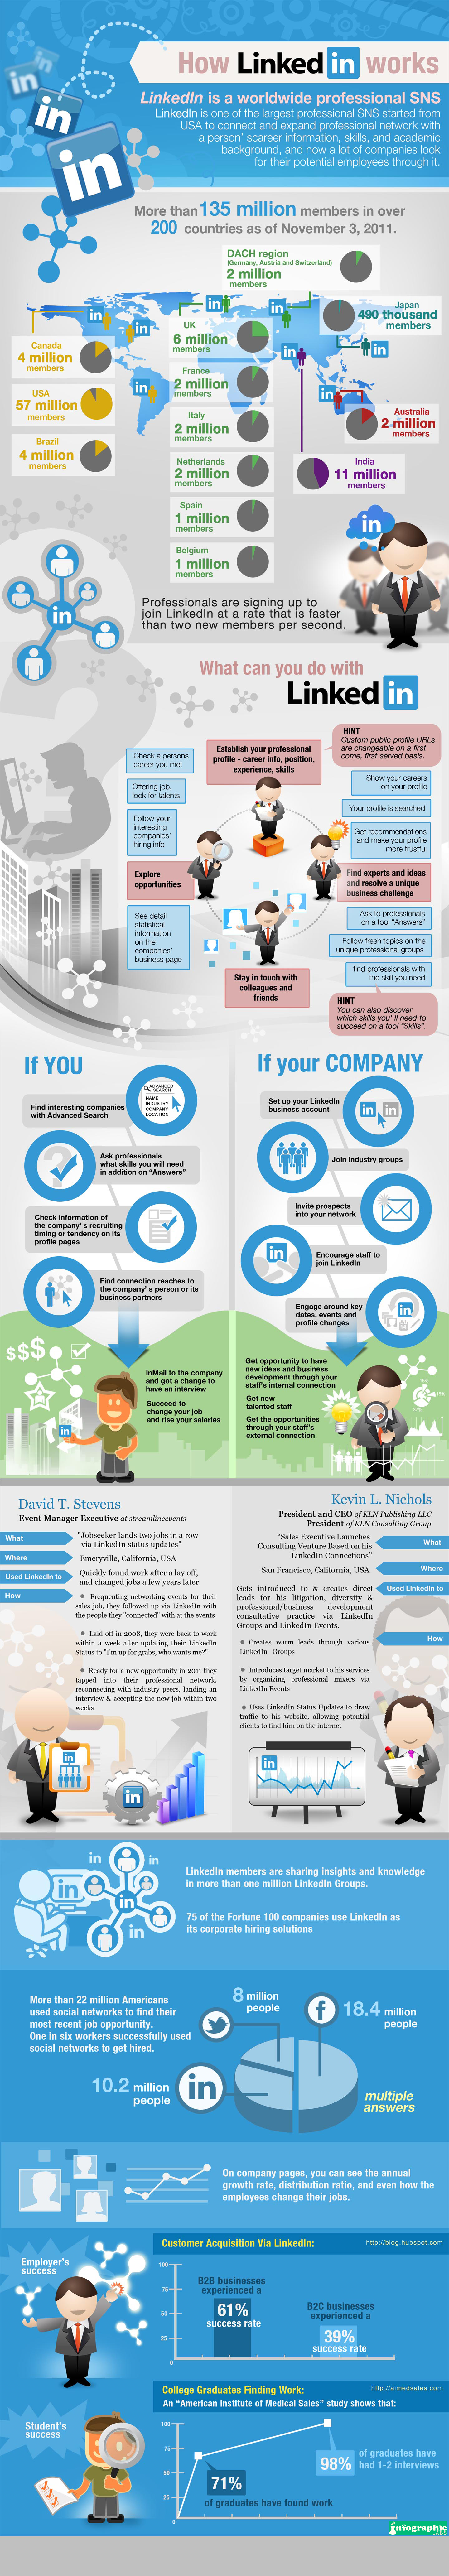 How LinkedIn Works [infographic]